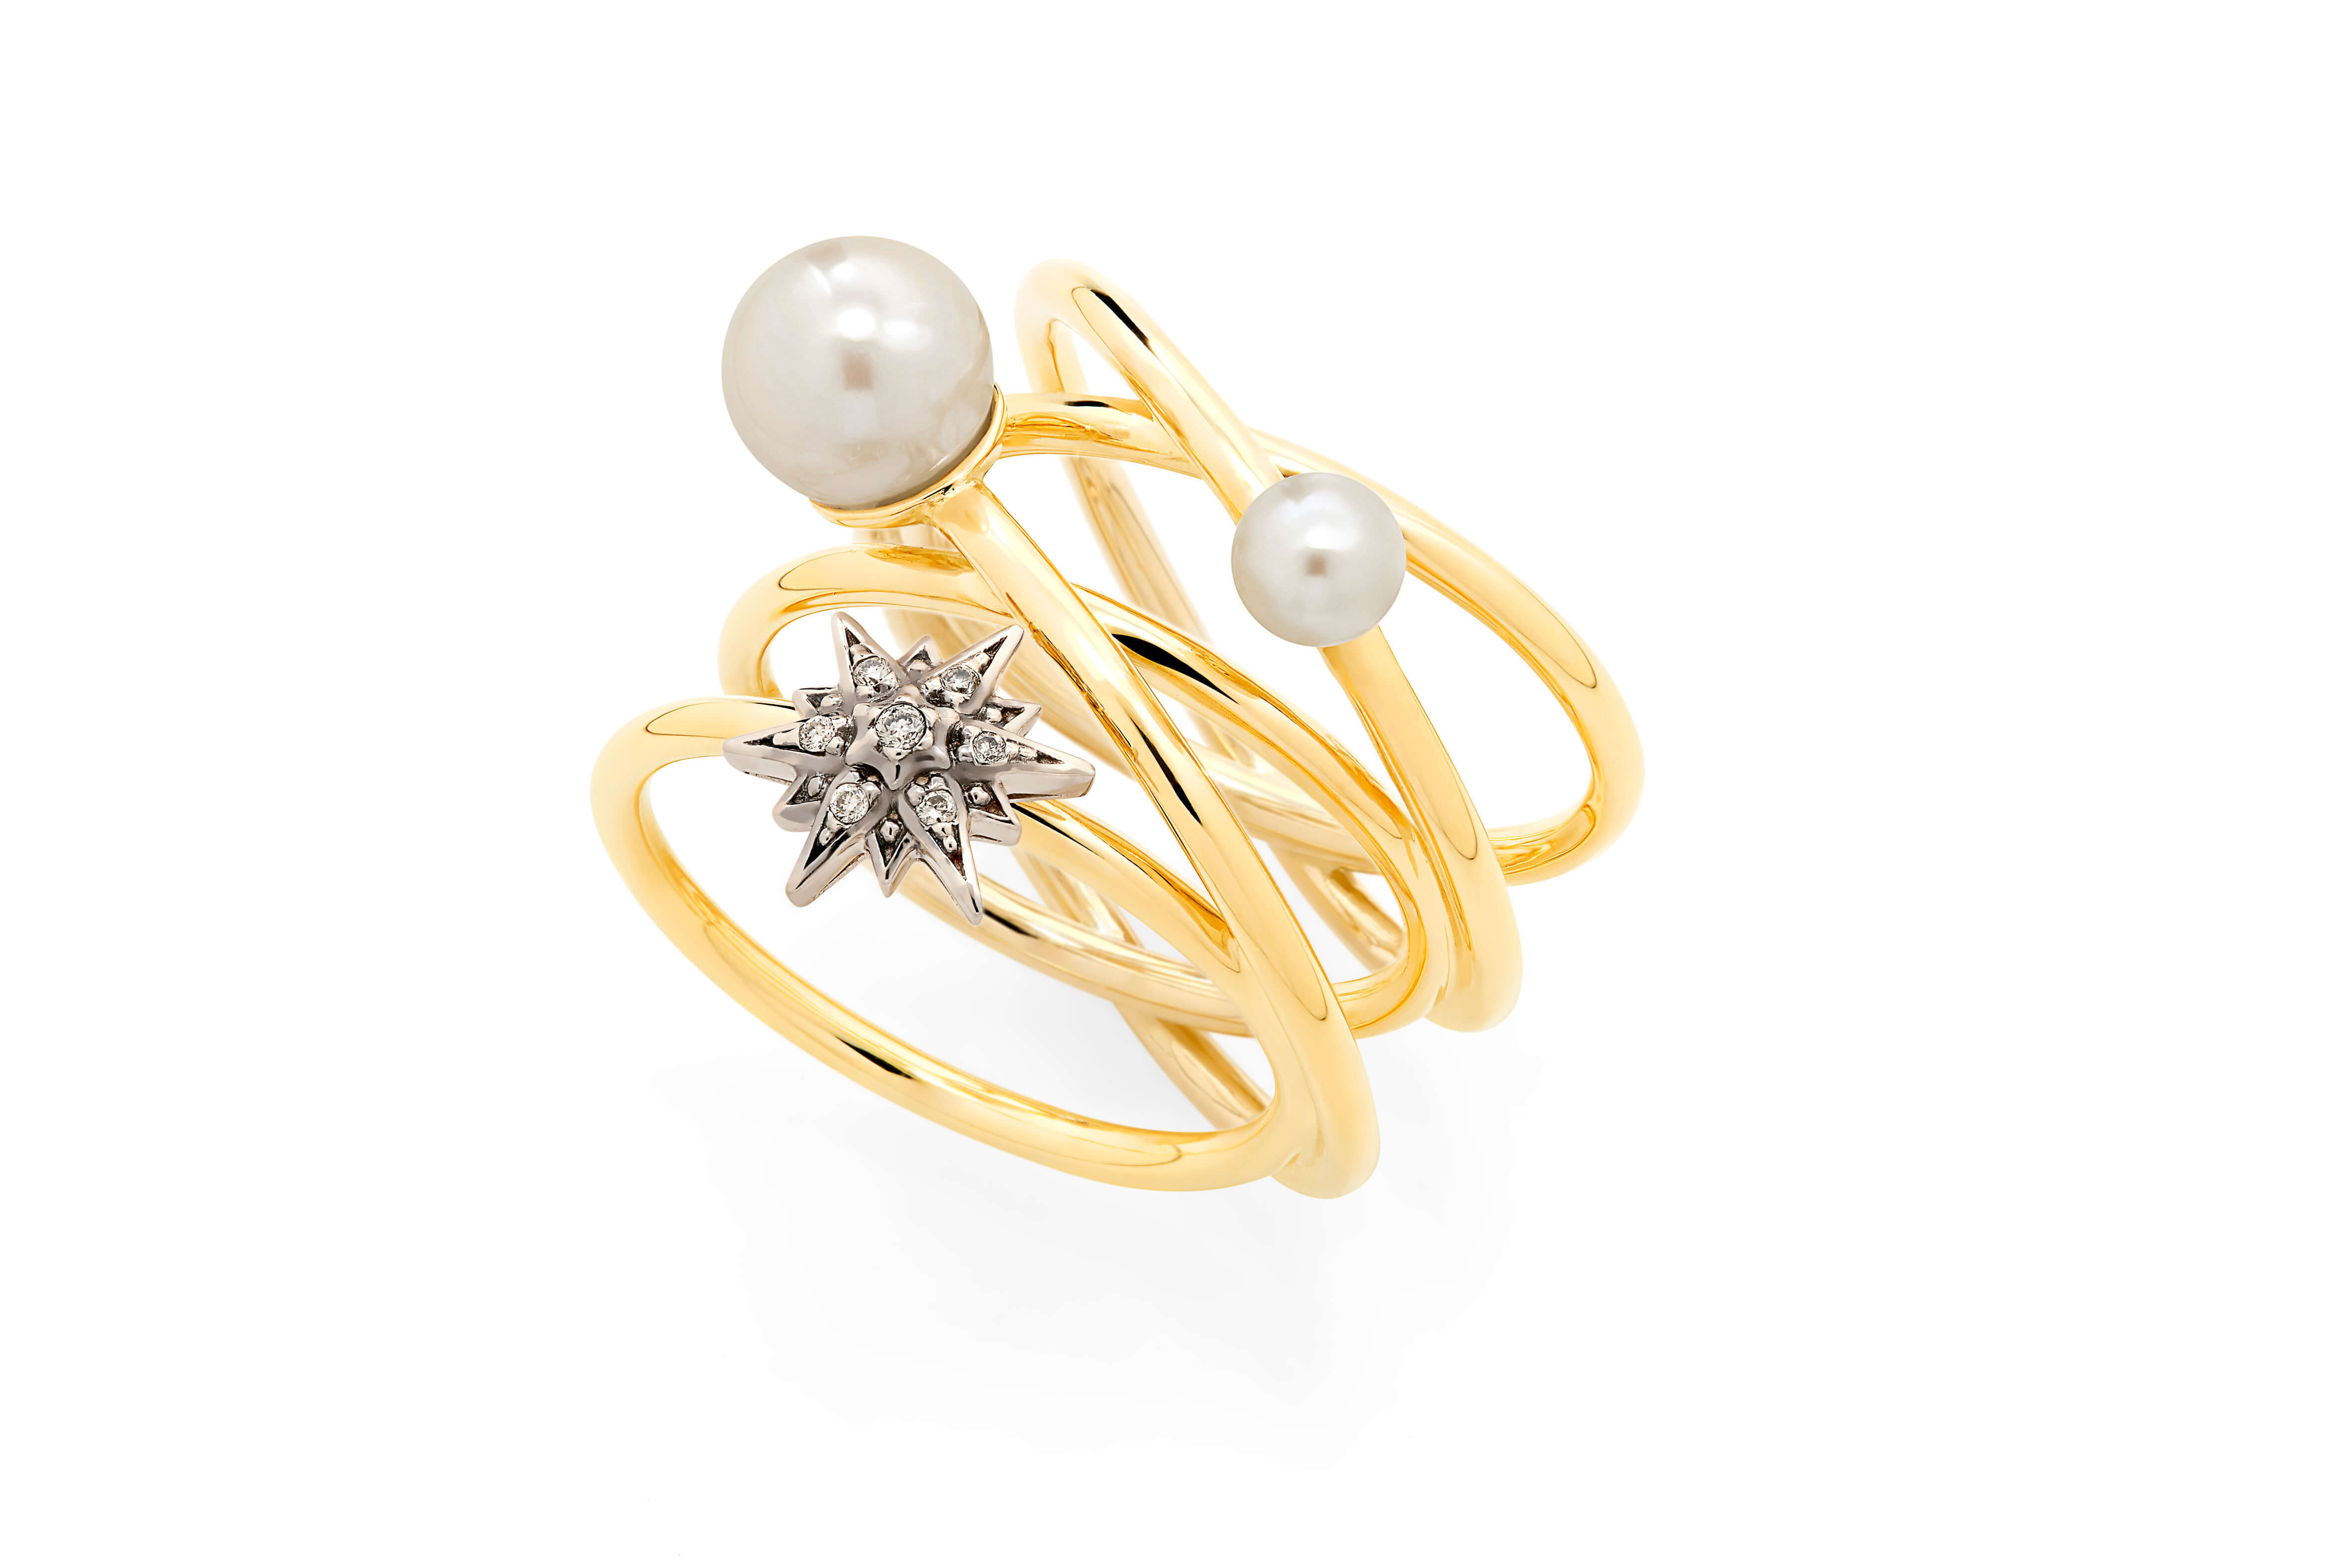 Pearls_of_Genesis_H.Stern_-_ring_in_18K_gold,_pearls_and_diamonds_(A2P_205198)